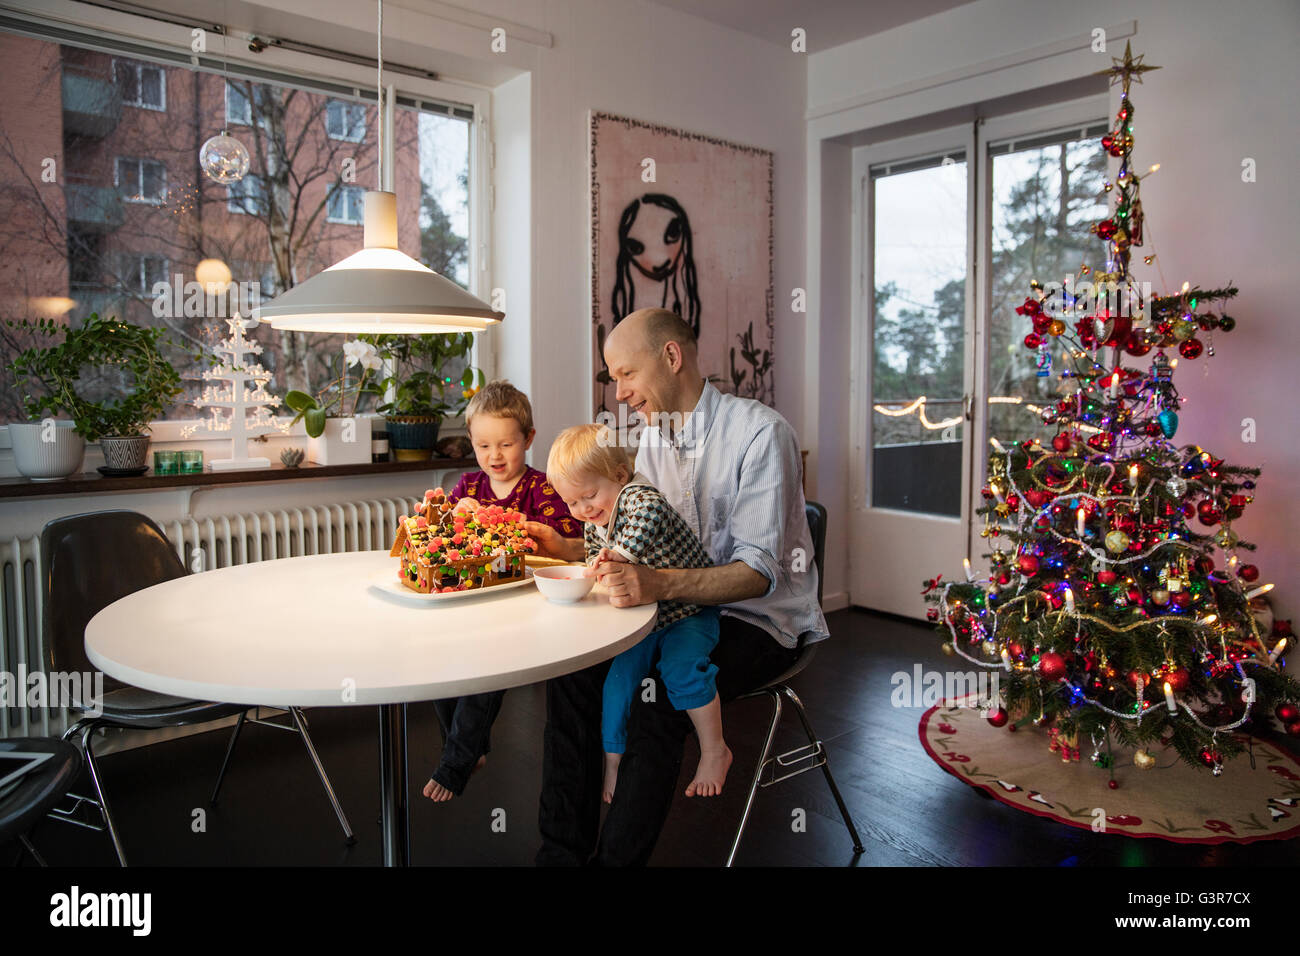 Sweden, Man and two boys (18-23 months, 4-5) decorating gingerbread house - Stock Image